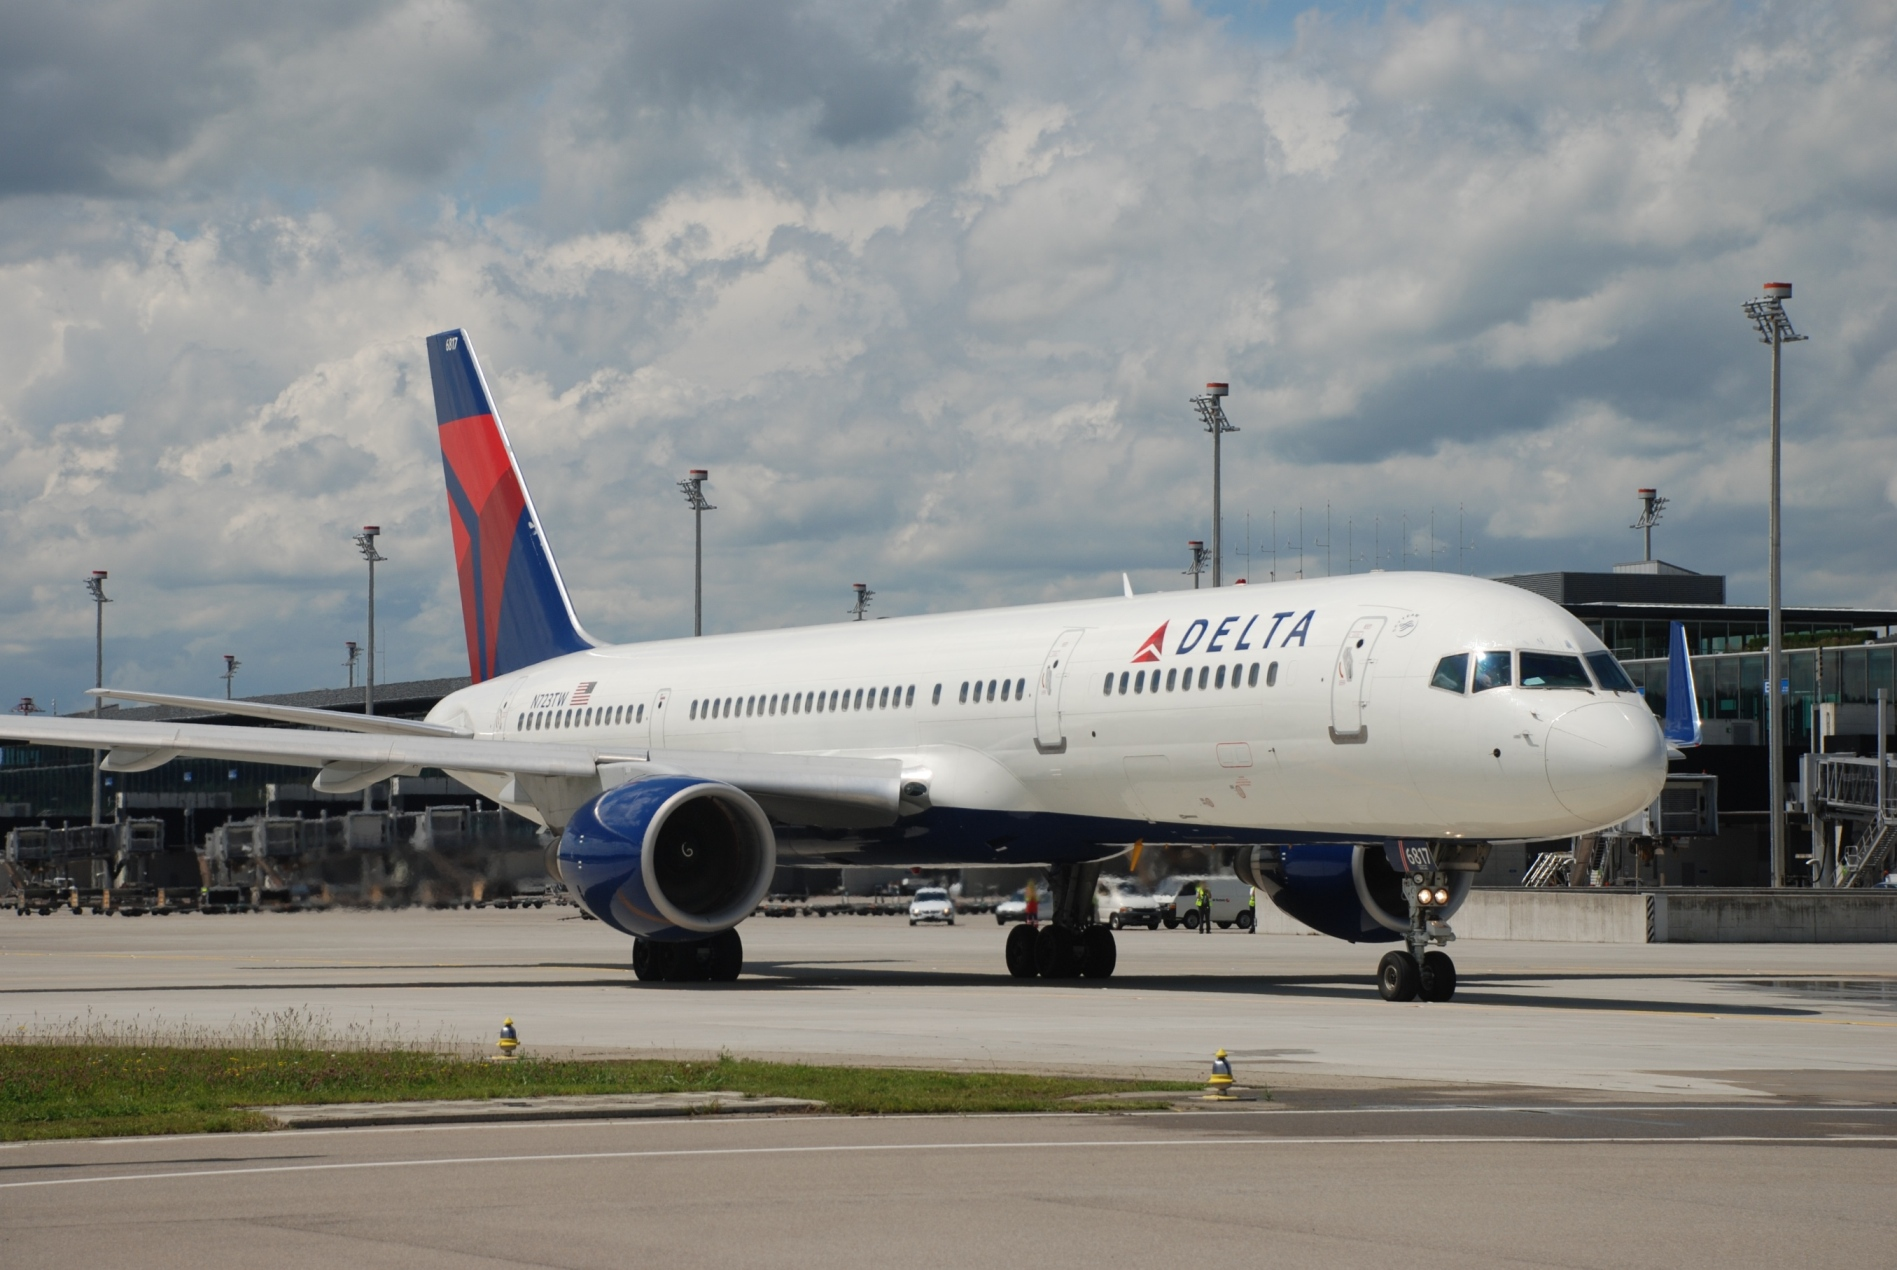 Delta Air Lines Breathes New Life Into Proposed Boeing 797 Mid-Sized Concept Plane